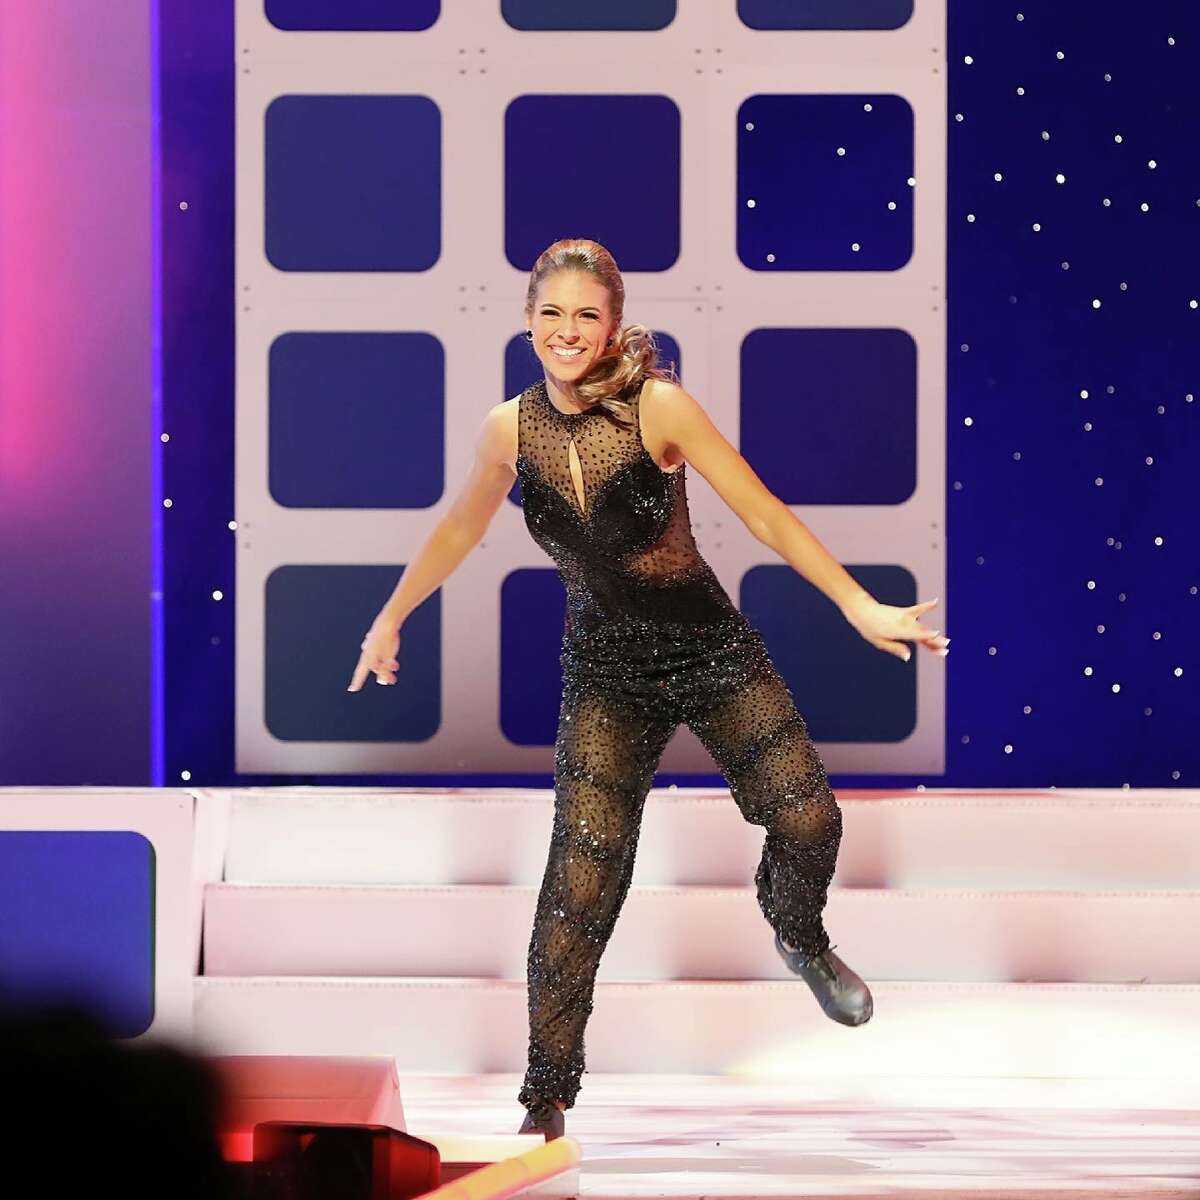 """In talent competition for the Miss Texas Volunteer pageant, Sharpless tap-danced to """"Ain't Nothing Wrong with That"""" by Robert Randolph and the Family Band. """"My mother owns a dance studio; so she put me in tap class when I was 2,"""" Sharpless says."""